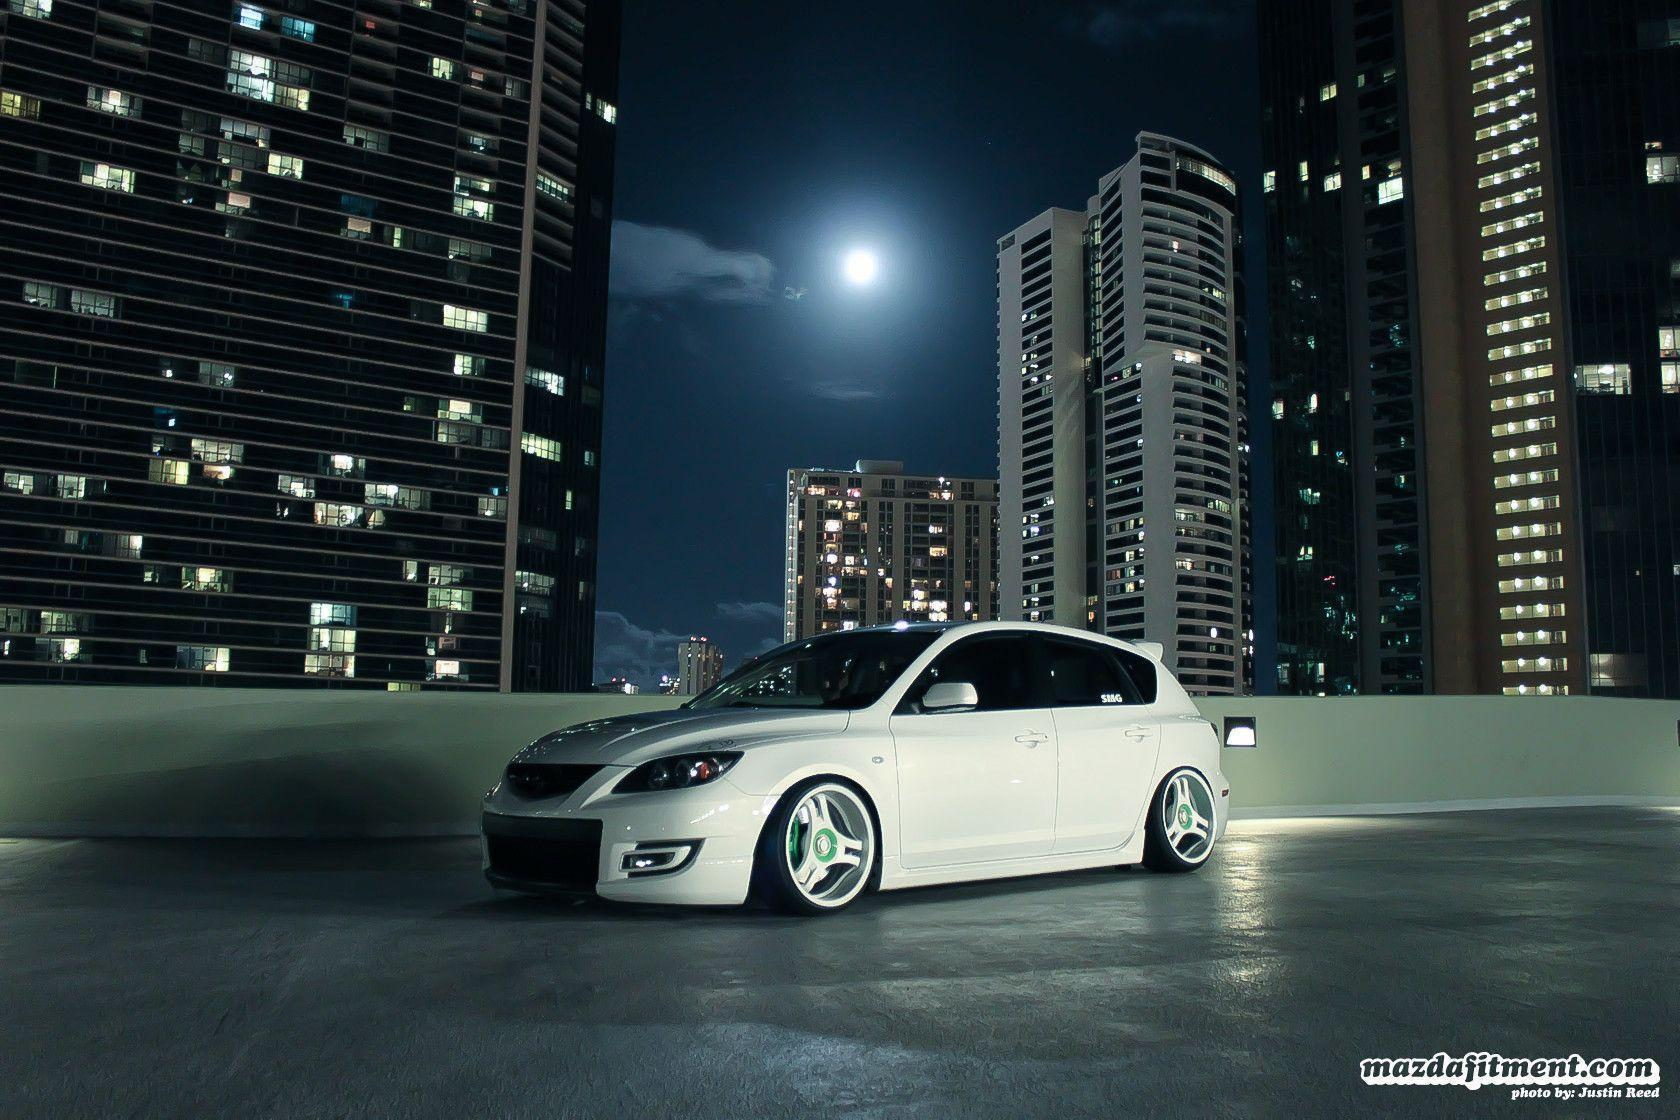 Mazdaspeed 3 Wallpapers Wallpaper Cave Mazda   CityConnectApps 1680x1120